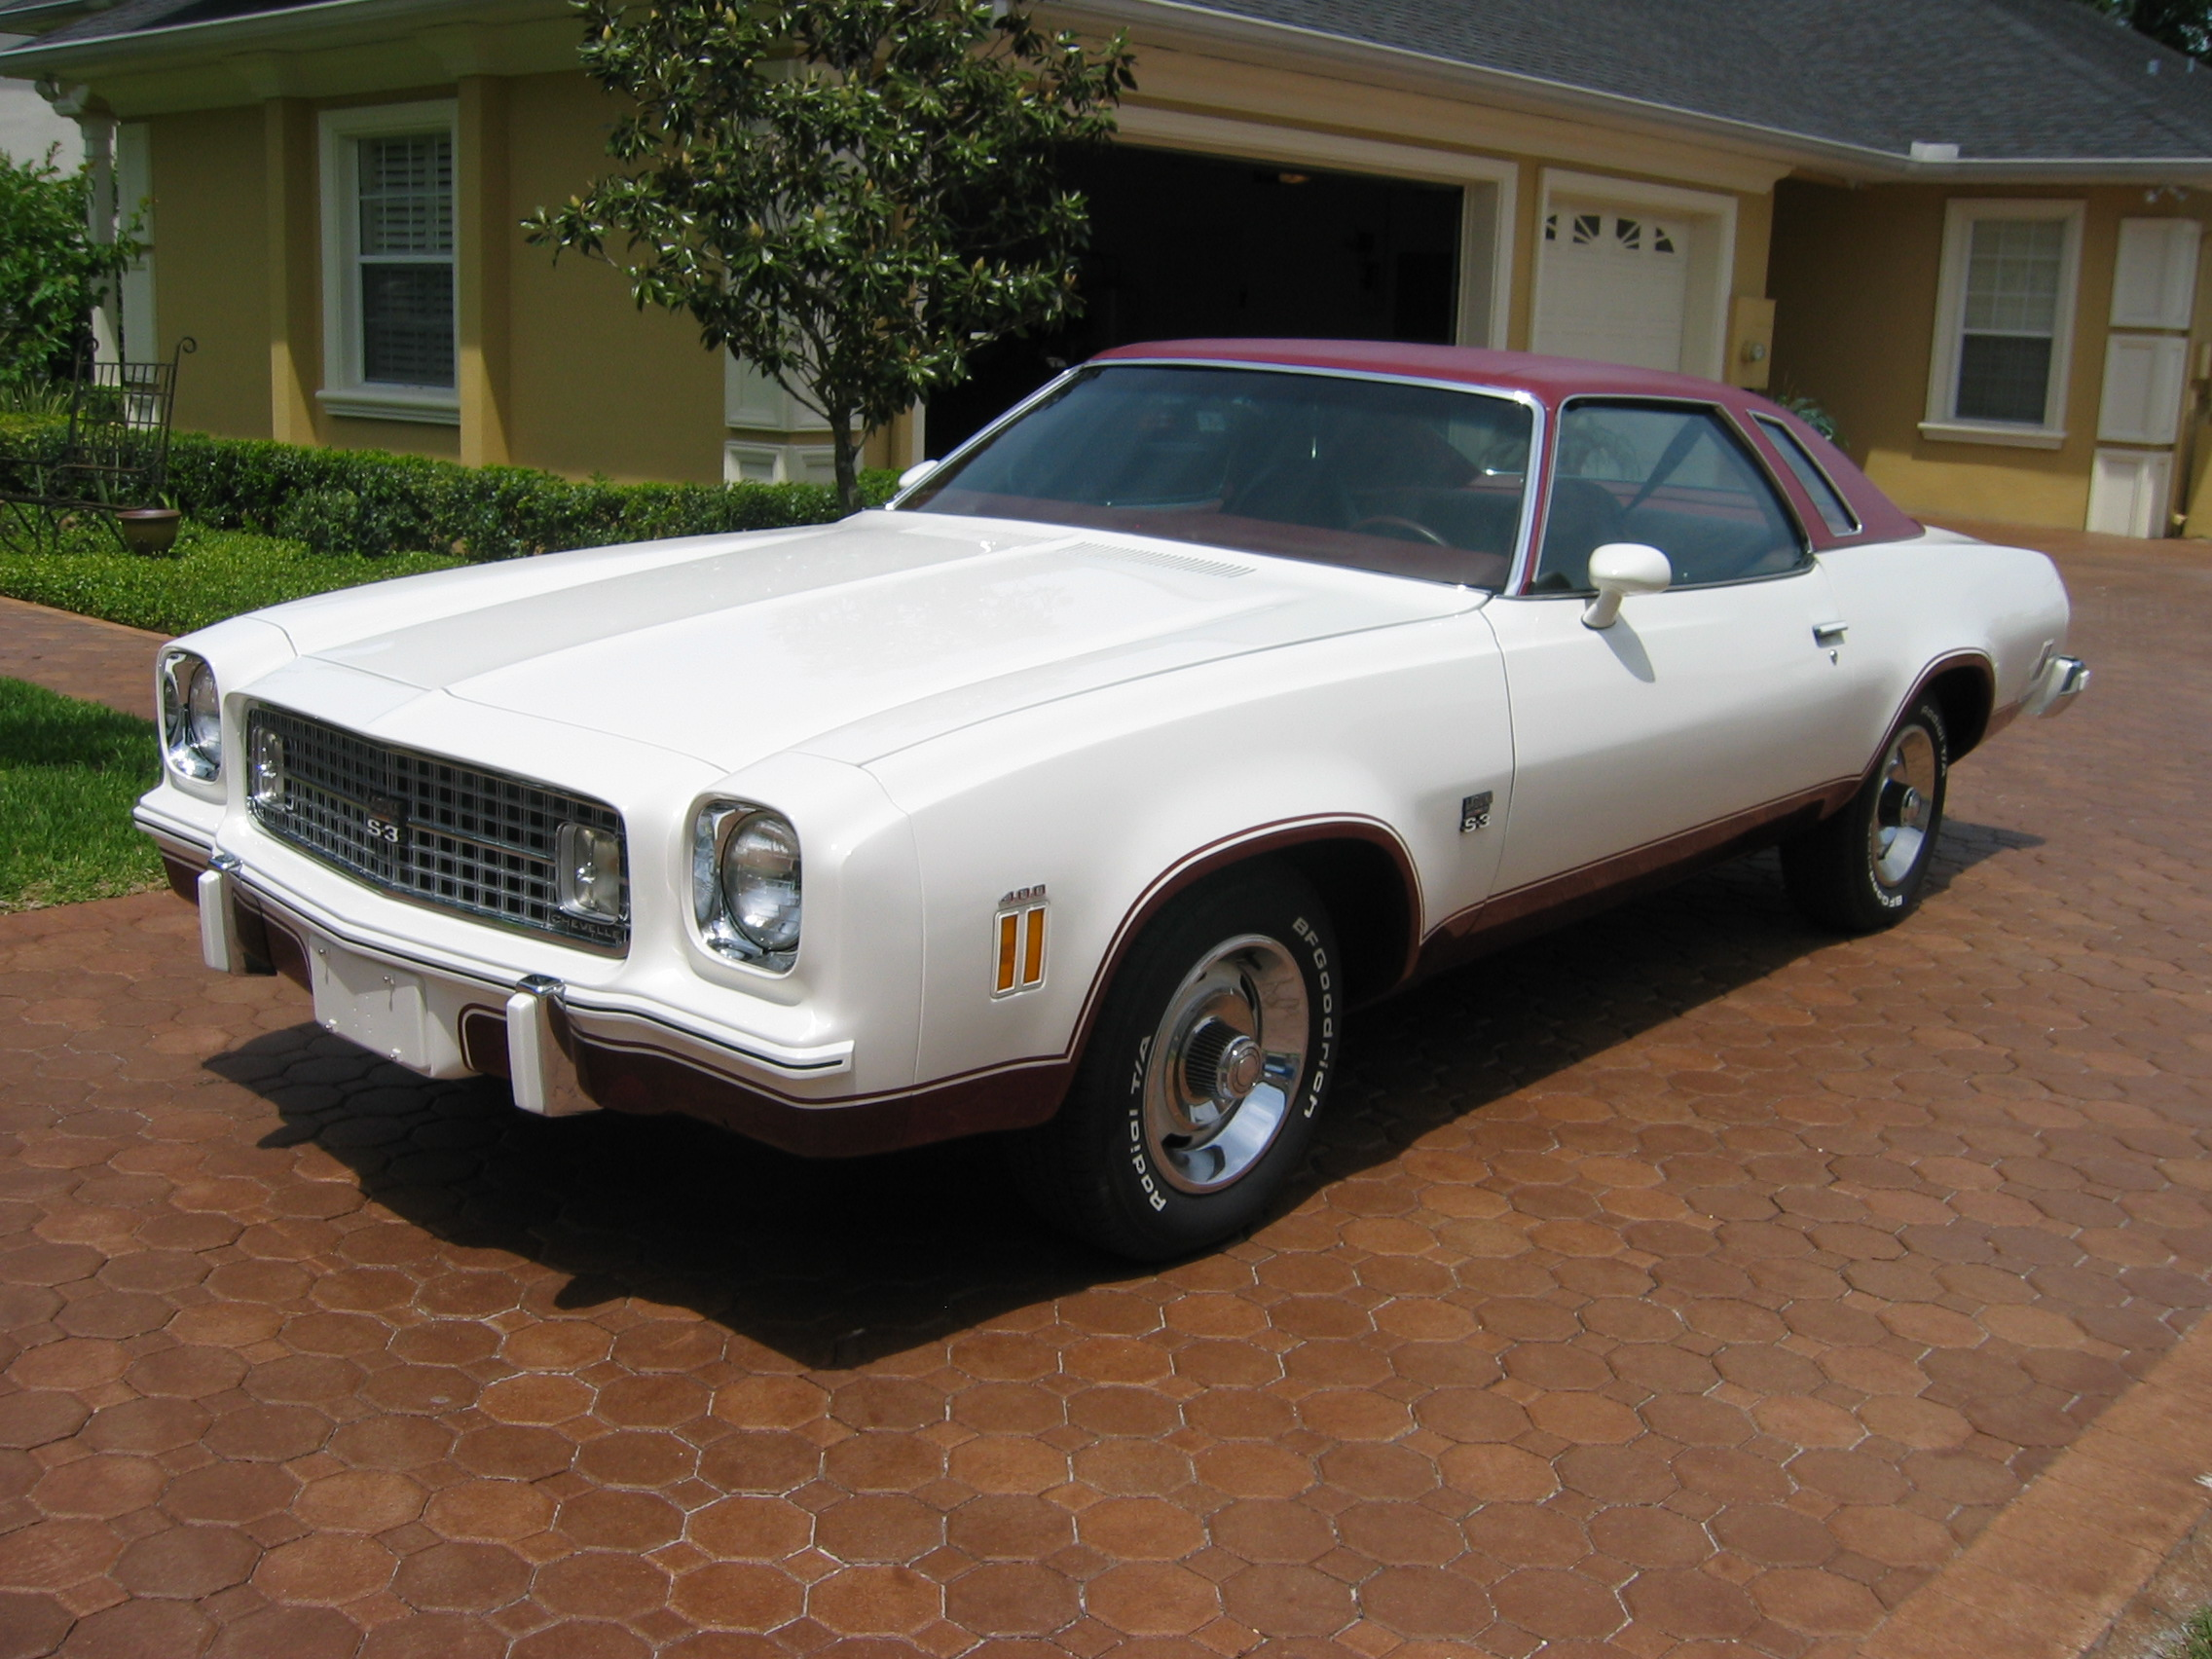 1976 chevelle laguna for sale autos weblog. Black Bedroom Furniture Sets. Home Design Ideas